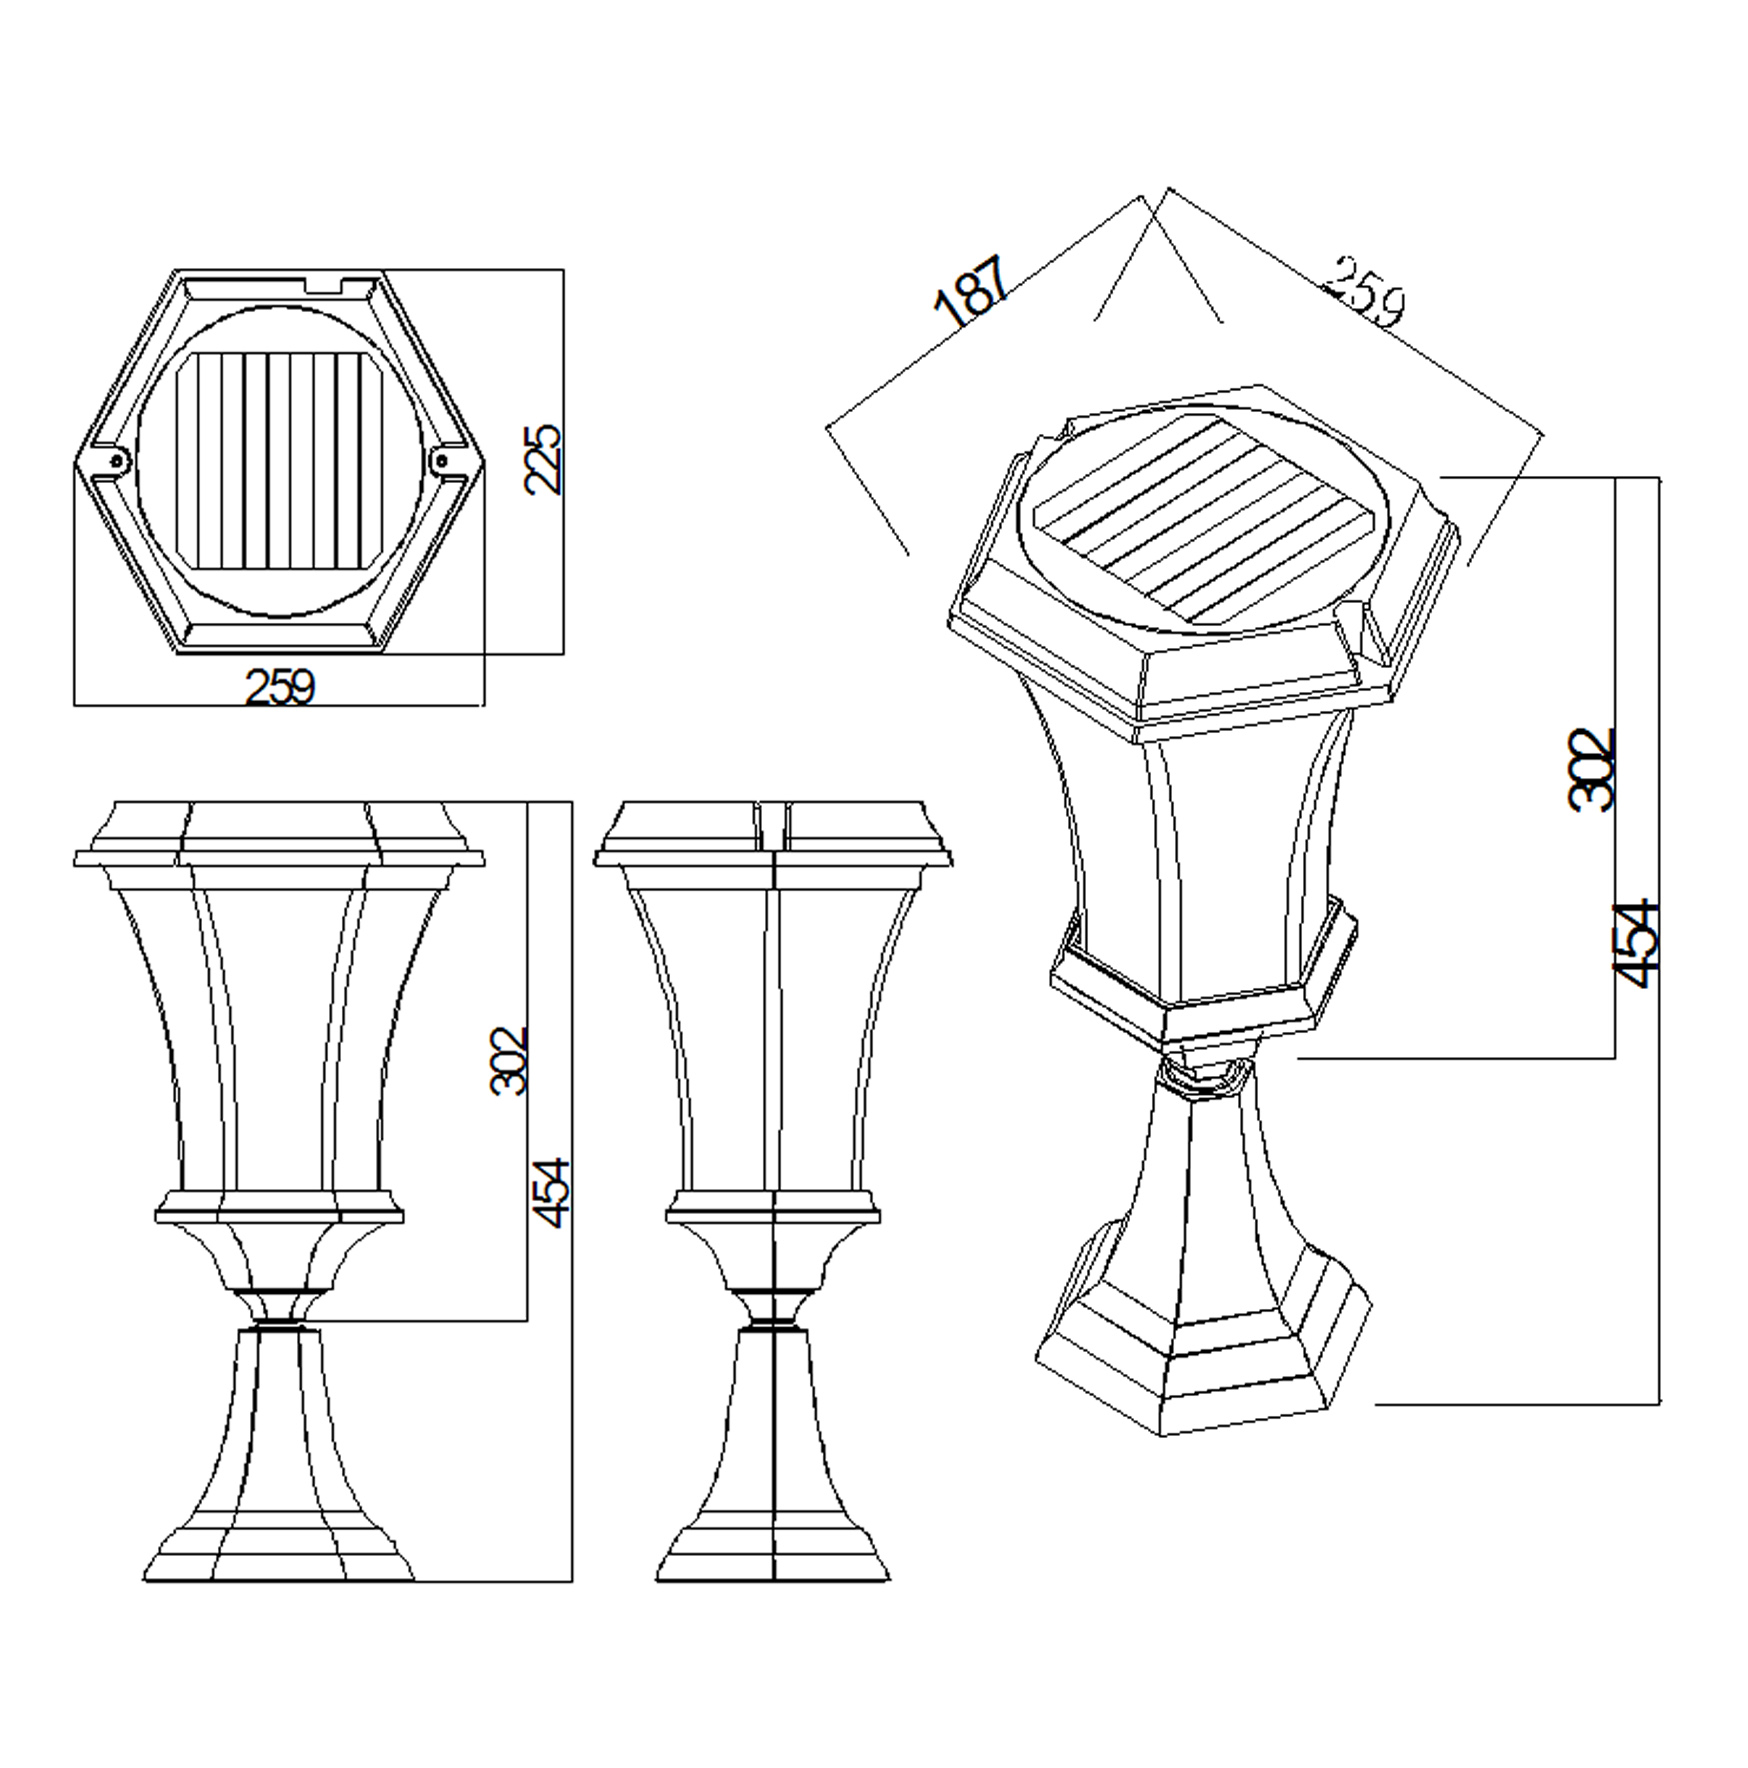 Solamon Pedestal Line Drawing